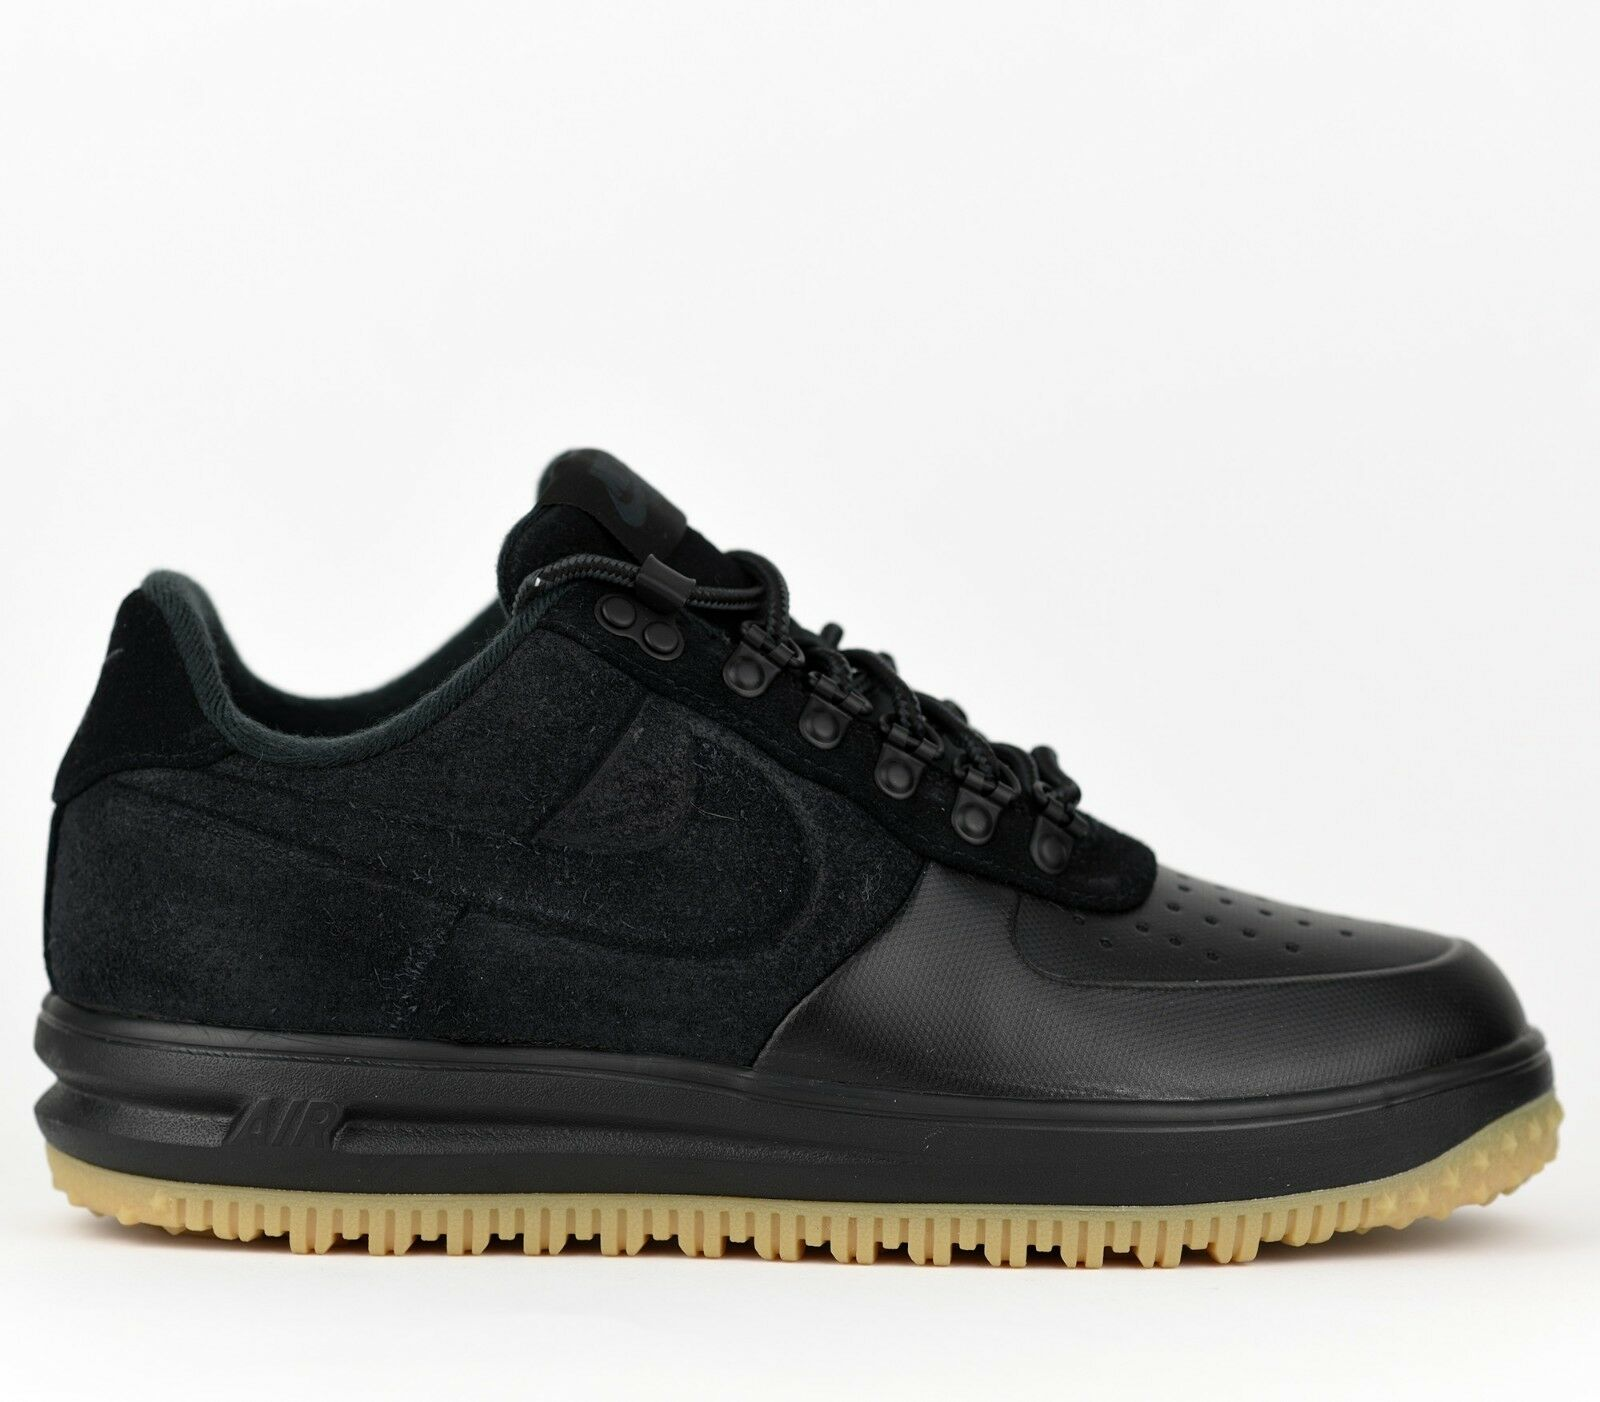 Nike Lunar Force 1 Duckboot Low LF1 Men Lifestyle shoes New Black AA1125-005